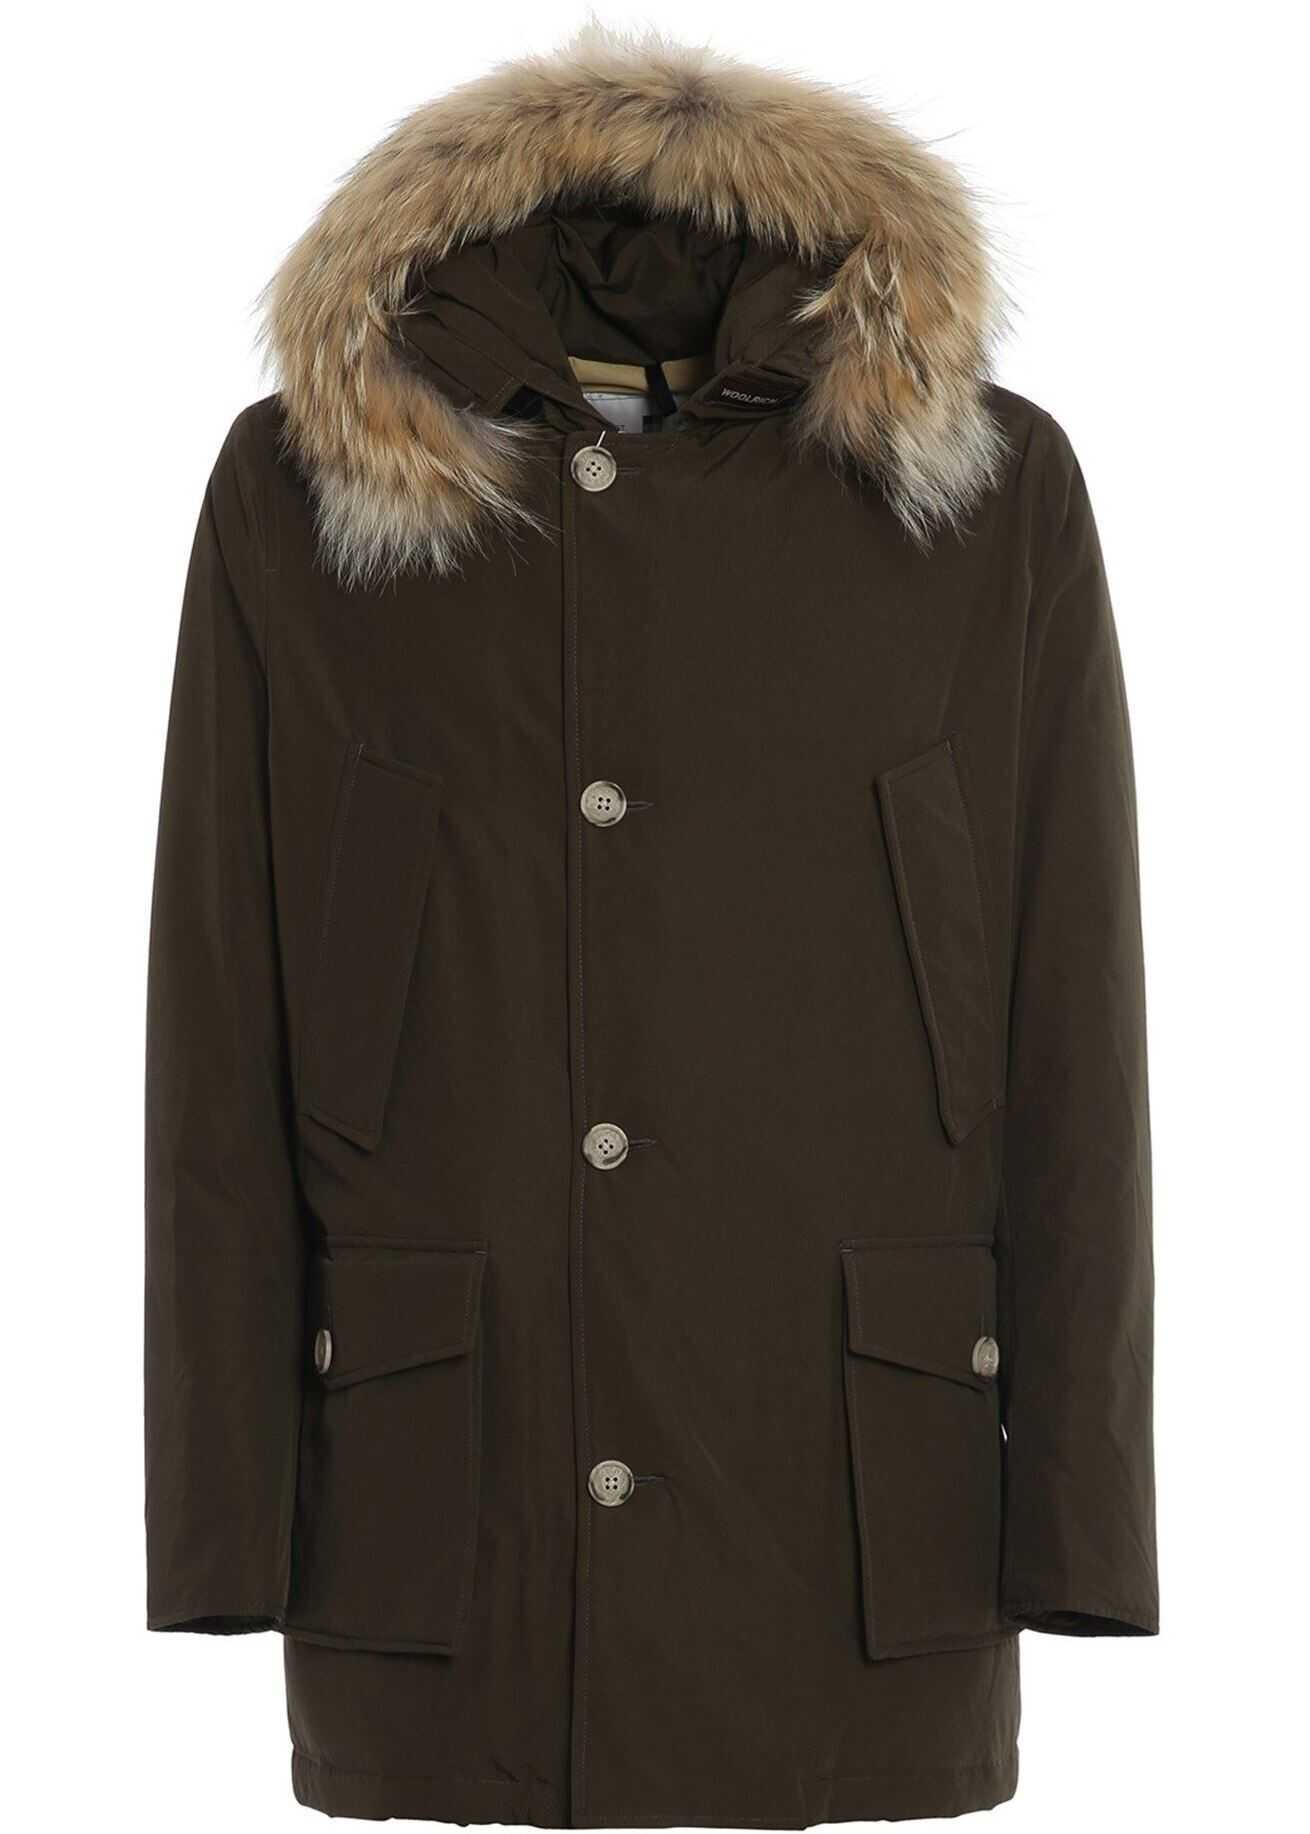 Woolrich Artic Parka Down Jacket In Brown Brown imagine